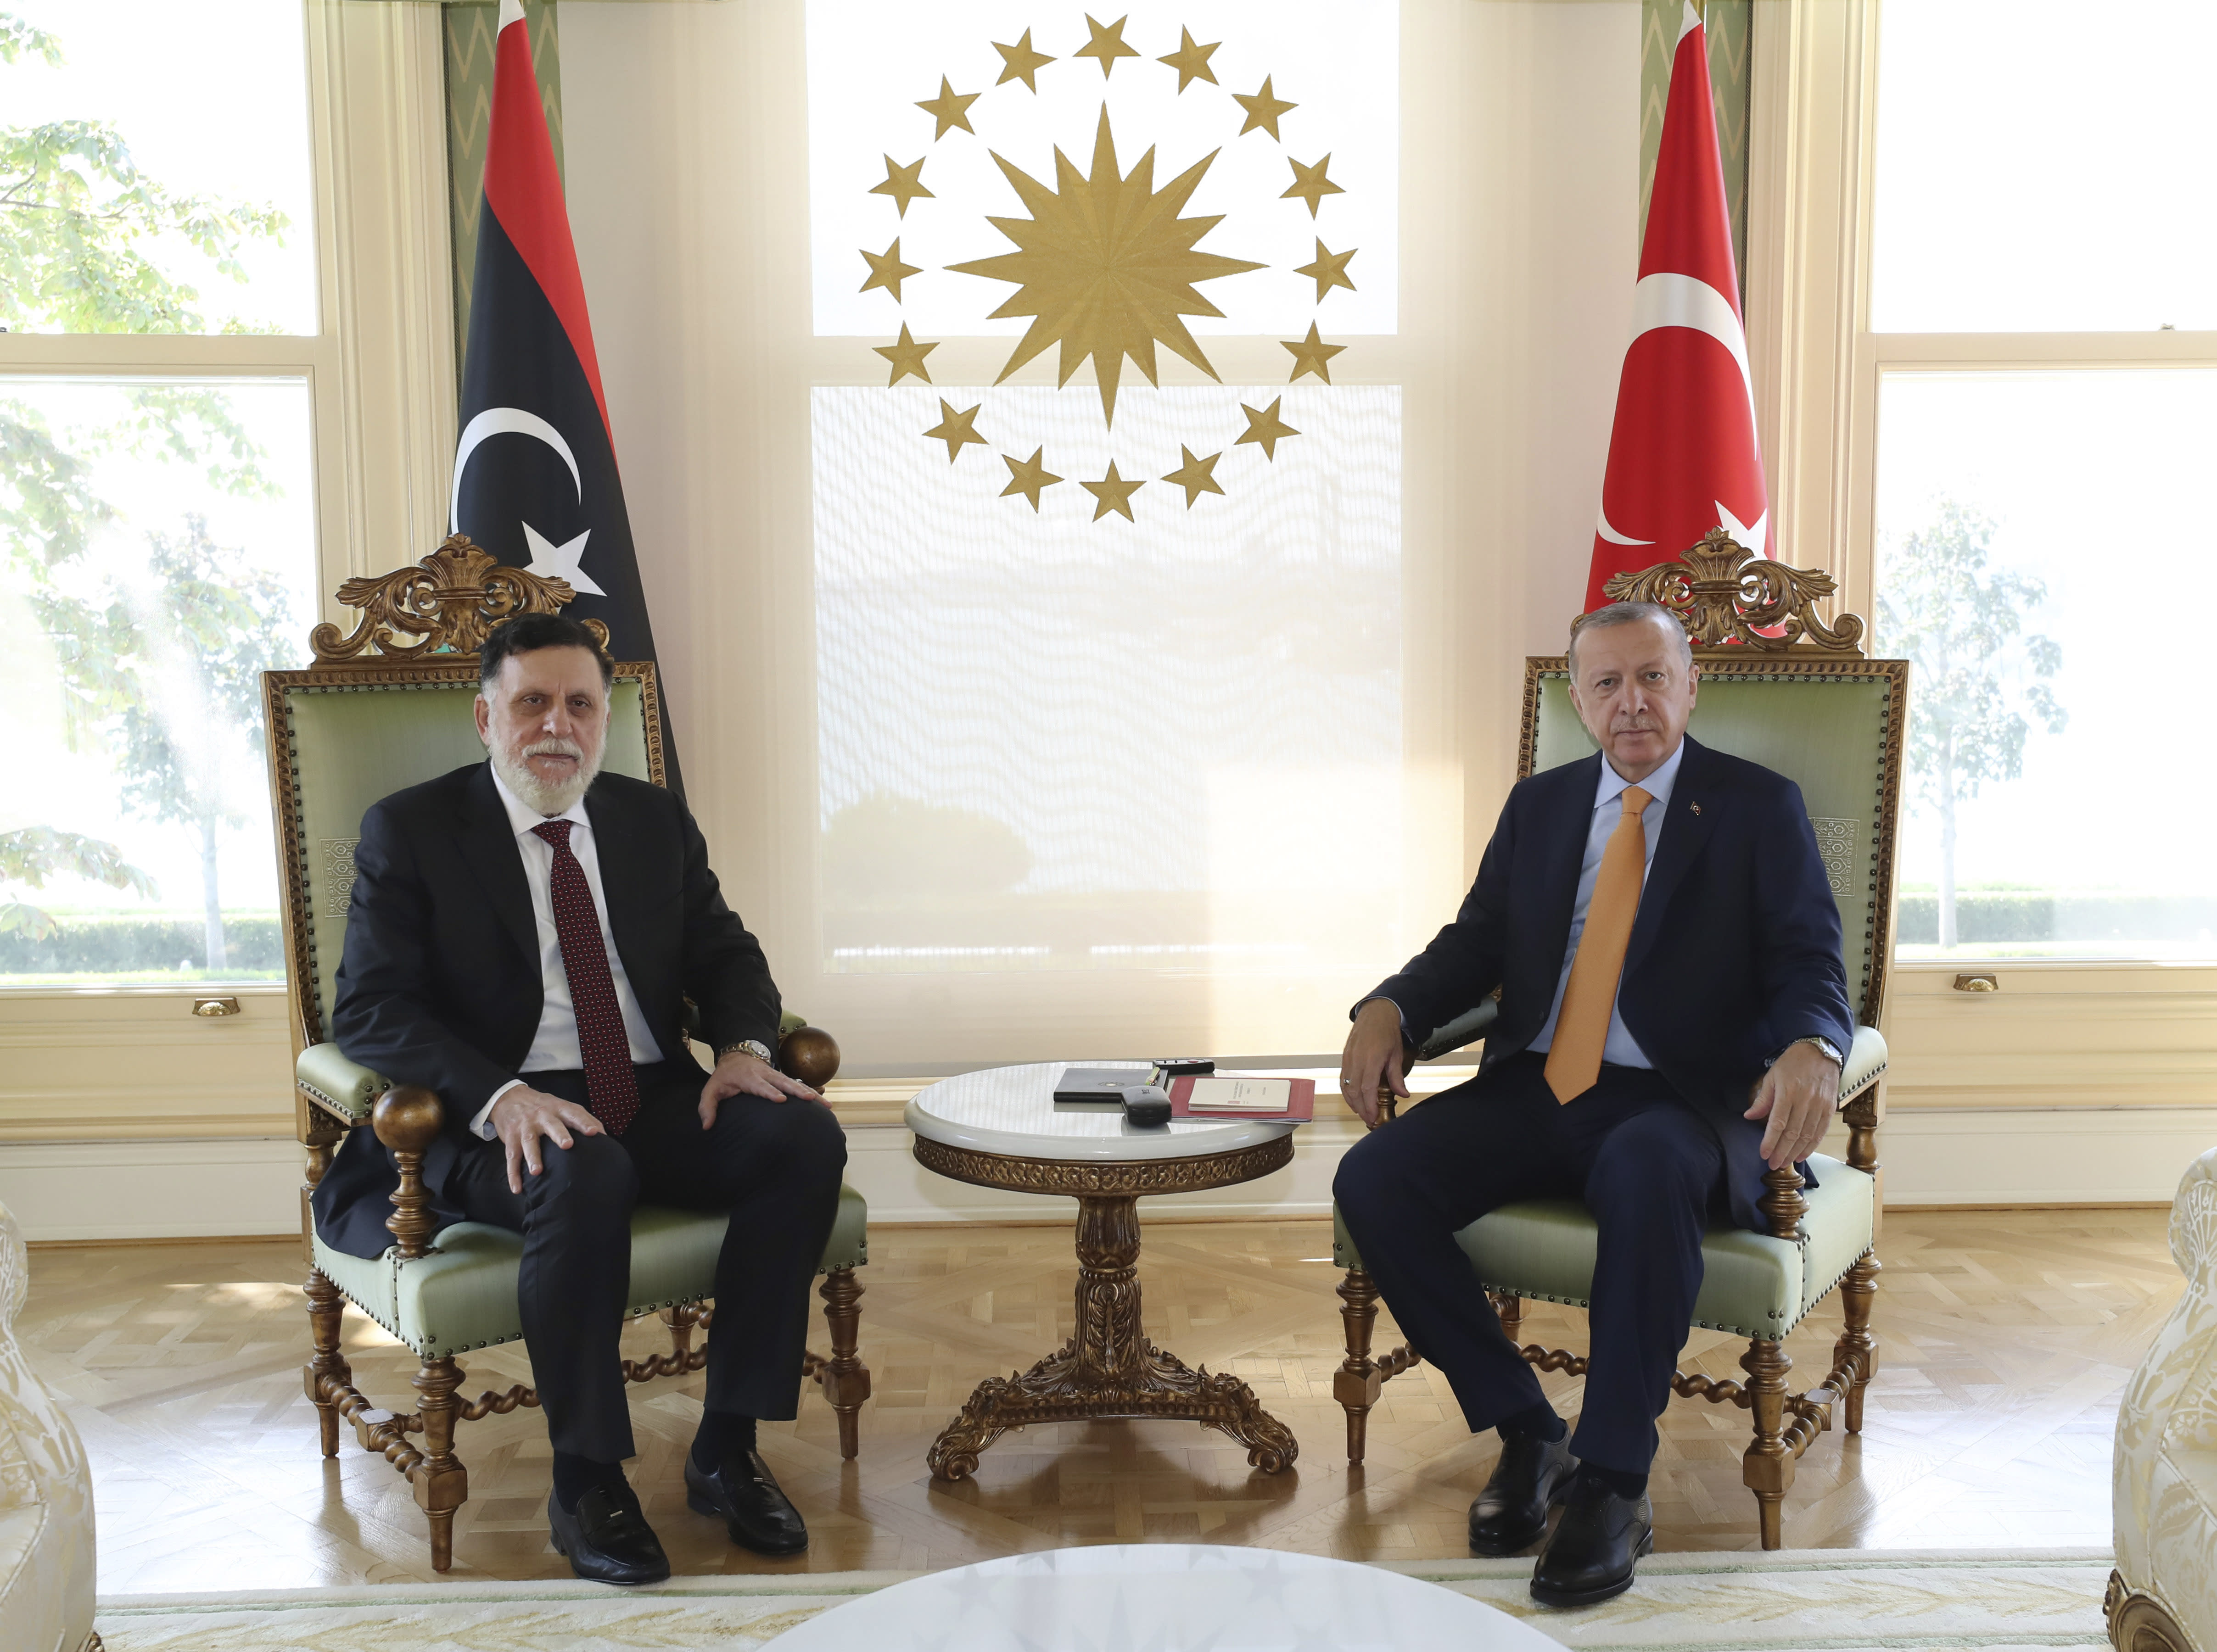 Turkey's President Recep Tayyip Erdogan, right, and Fayez Sarraj, the head of Libya's internationally-recognized government, pose together for photographs prior to their official talks in Istanbul, Sunday, Sept. 6, 2020.(Turkish Presidency via AP. Pool)